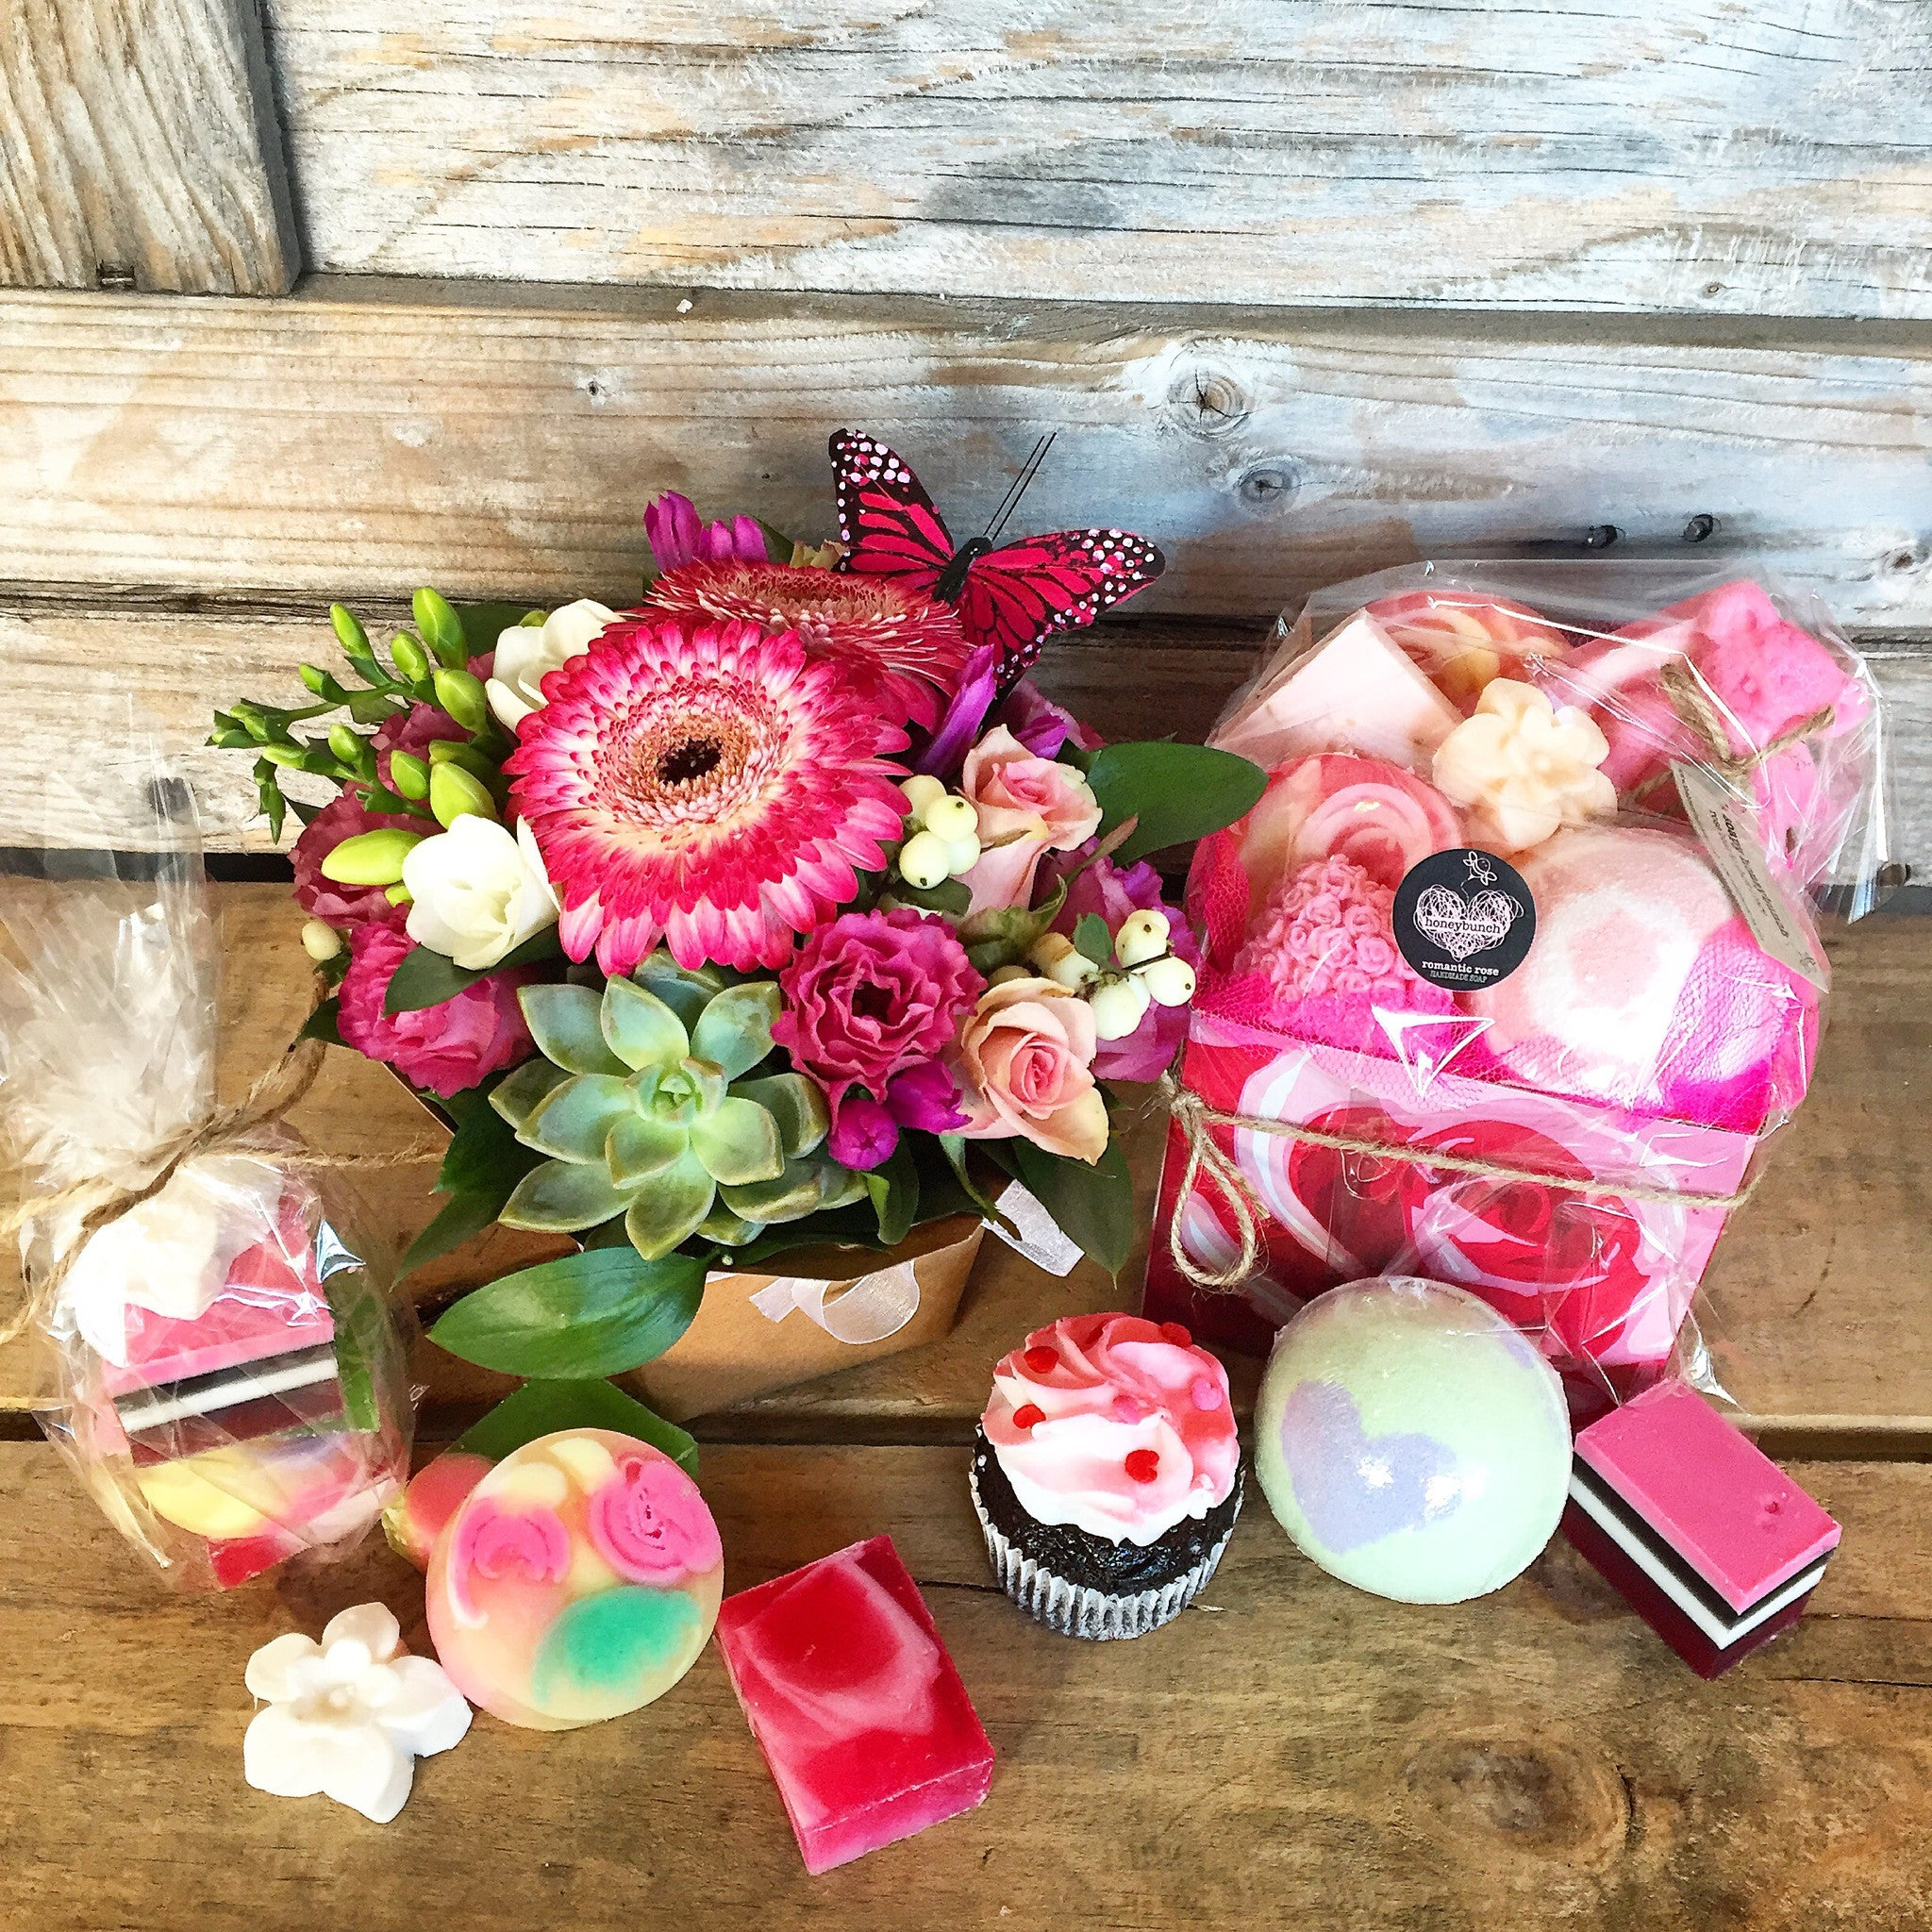 Deluxe gift pack flowers soaps and a cupcake